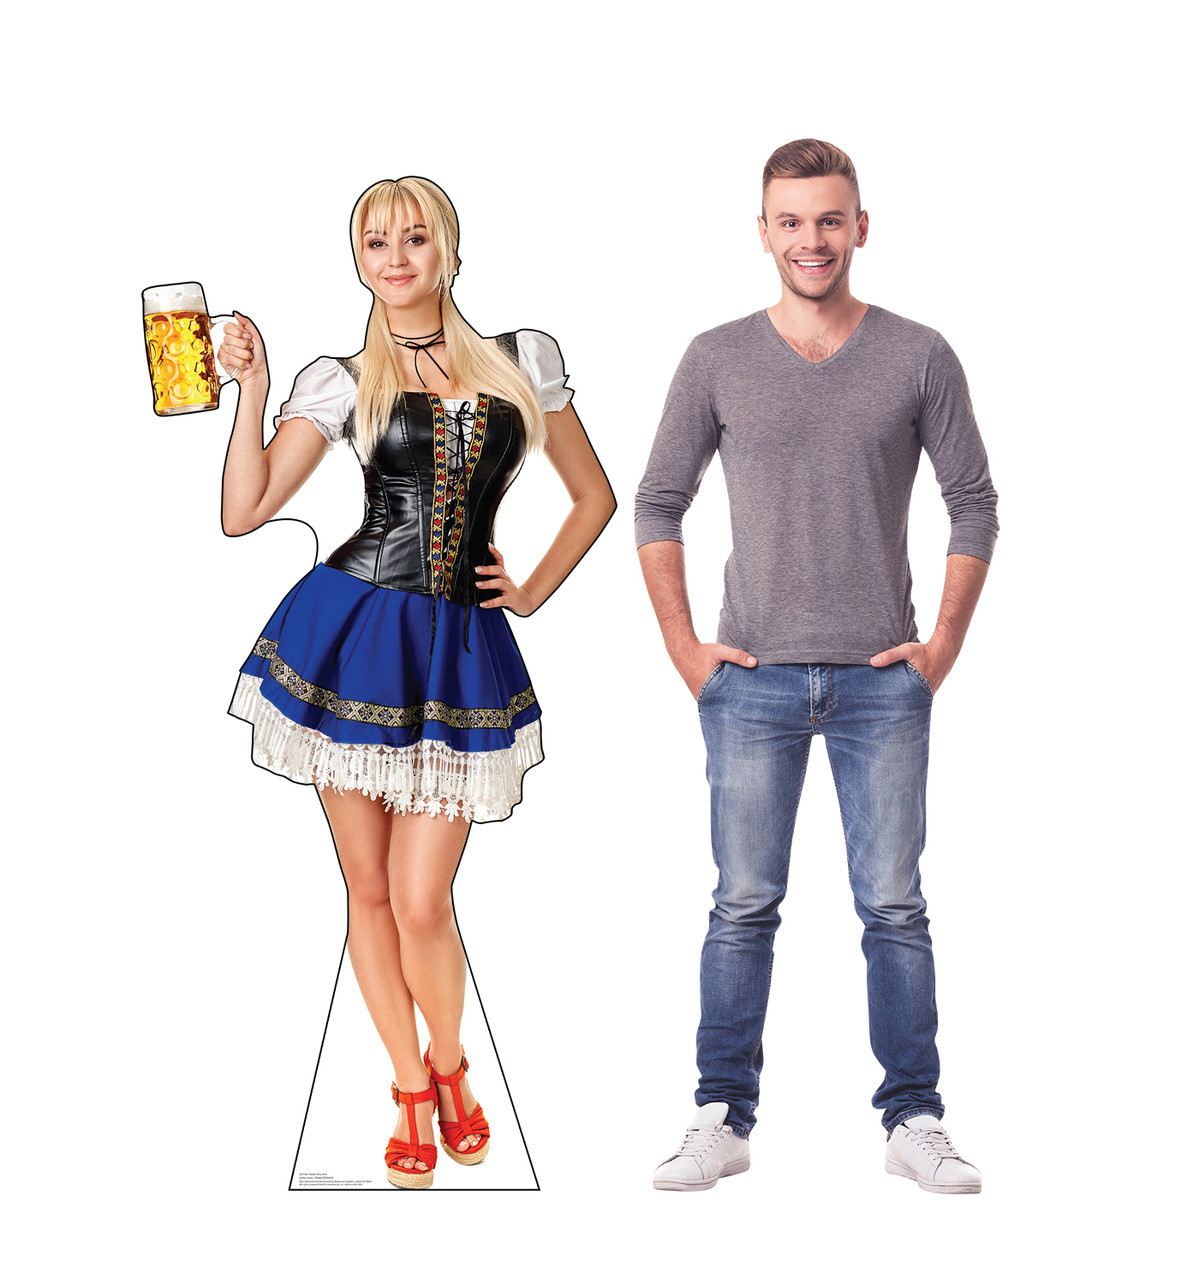 Life-size cardboard standee of a Bar Maiden Blue Skirt with with model.